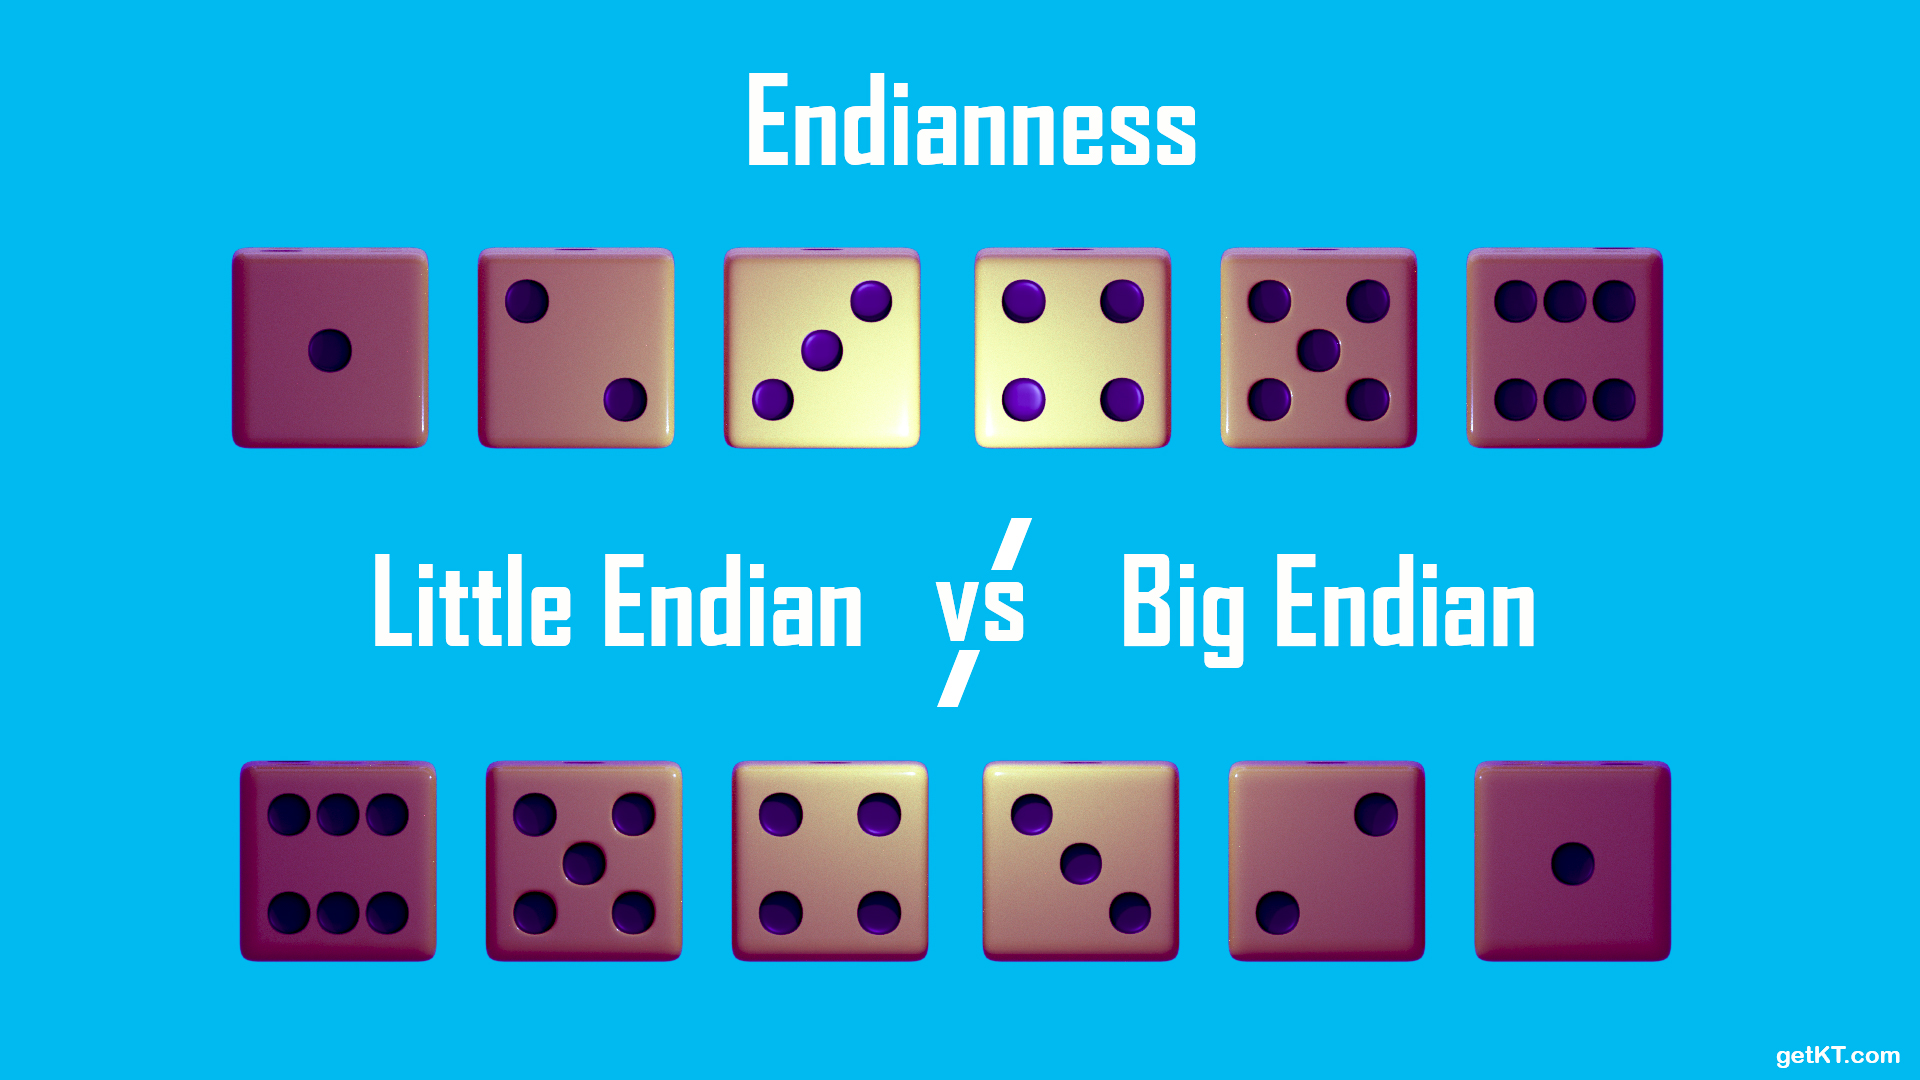 Endianness. Little Endian vs Big Endian